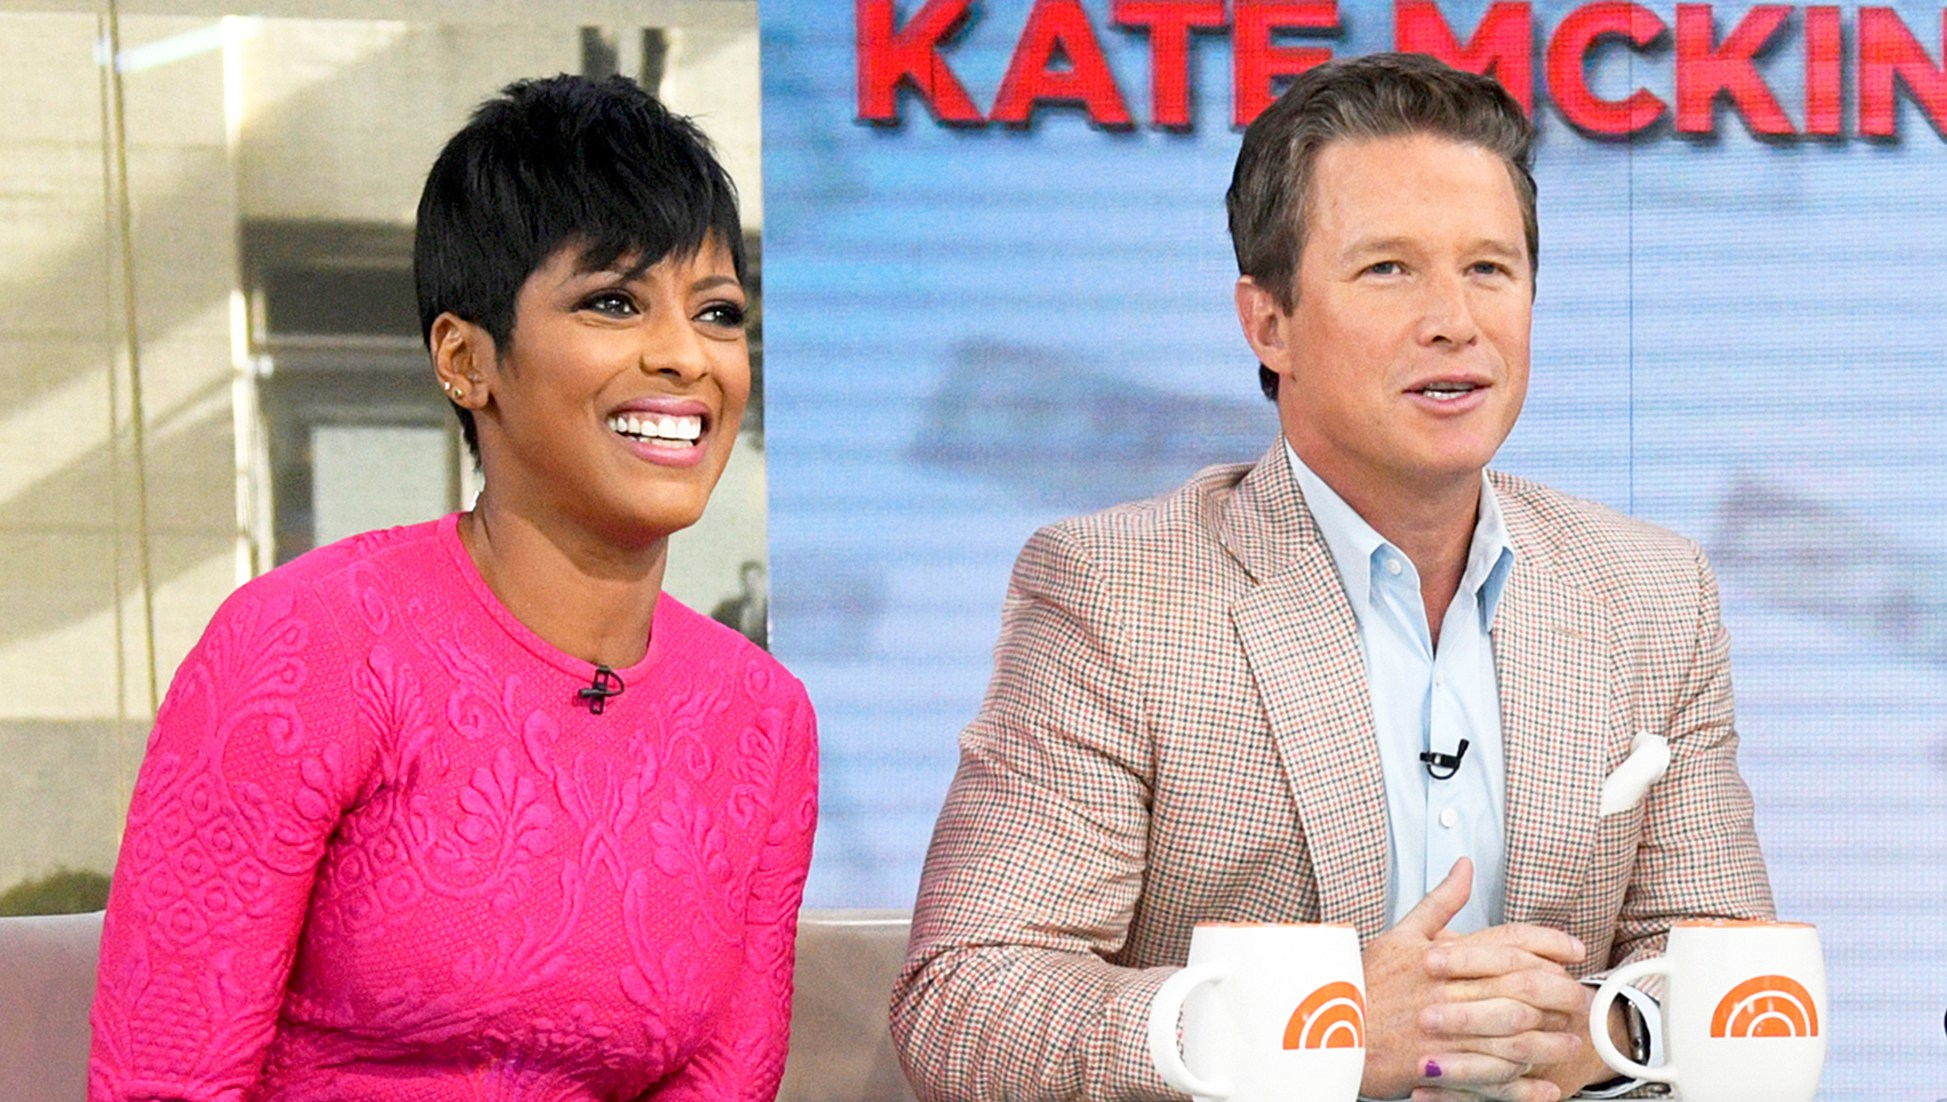 Tamron Hall and Billy Bush on 'Today' show